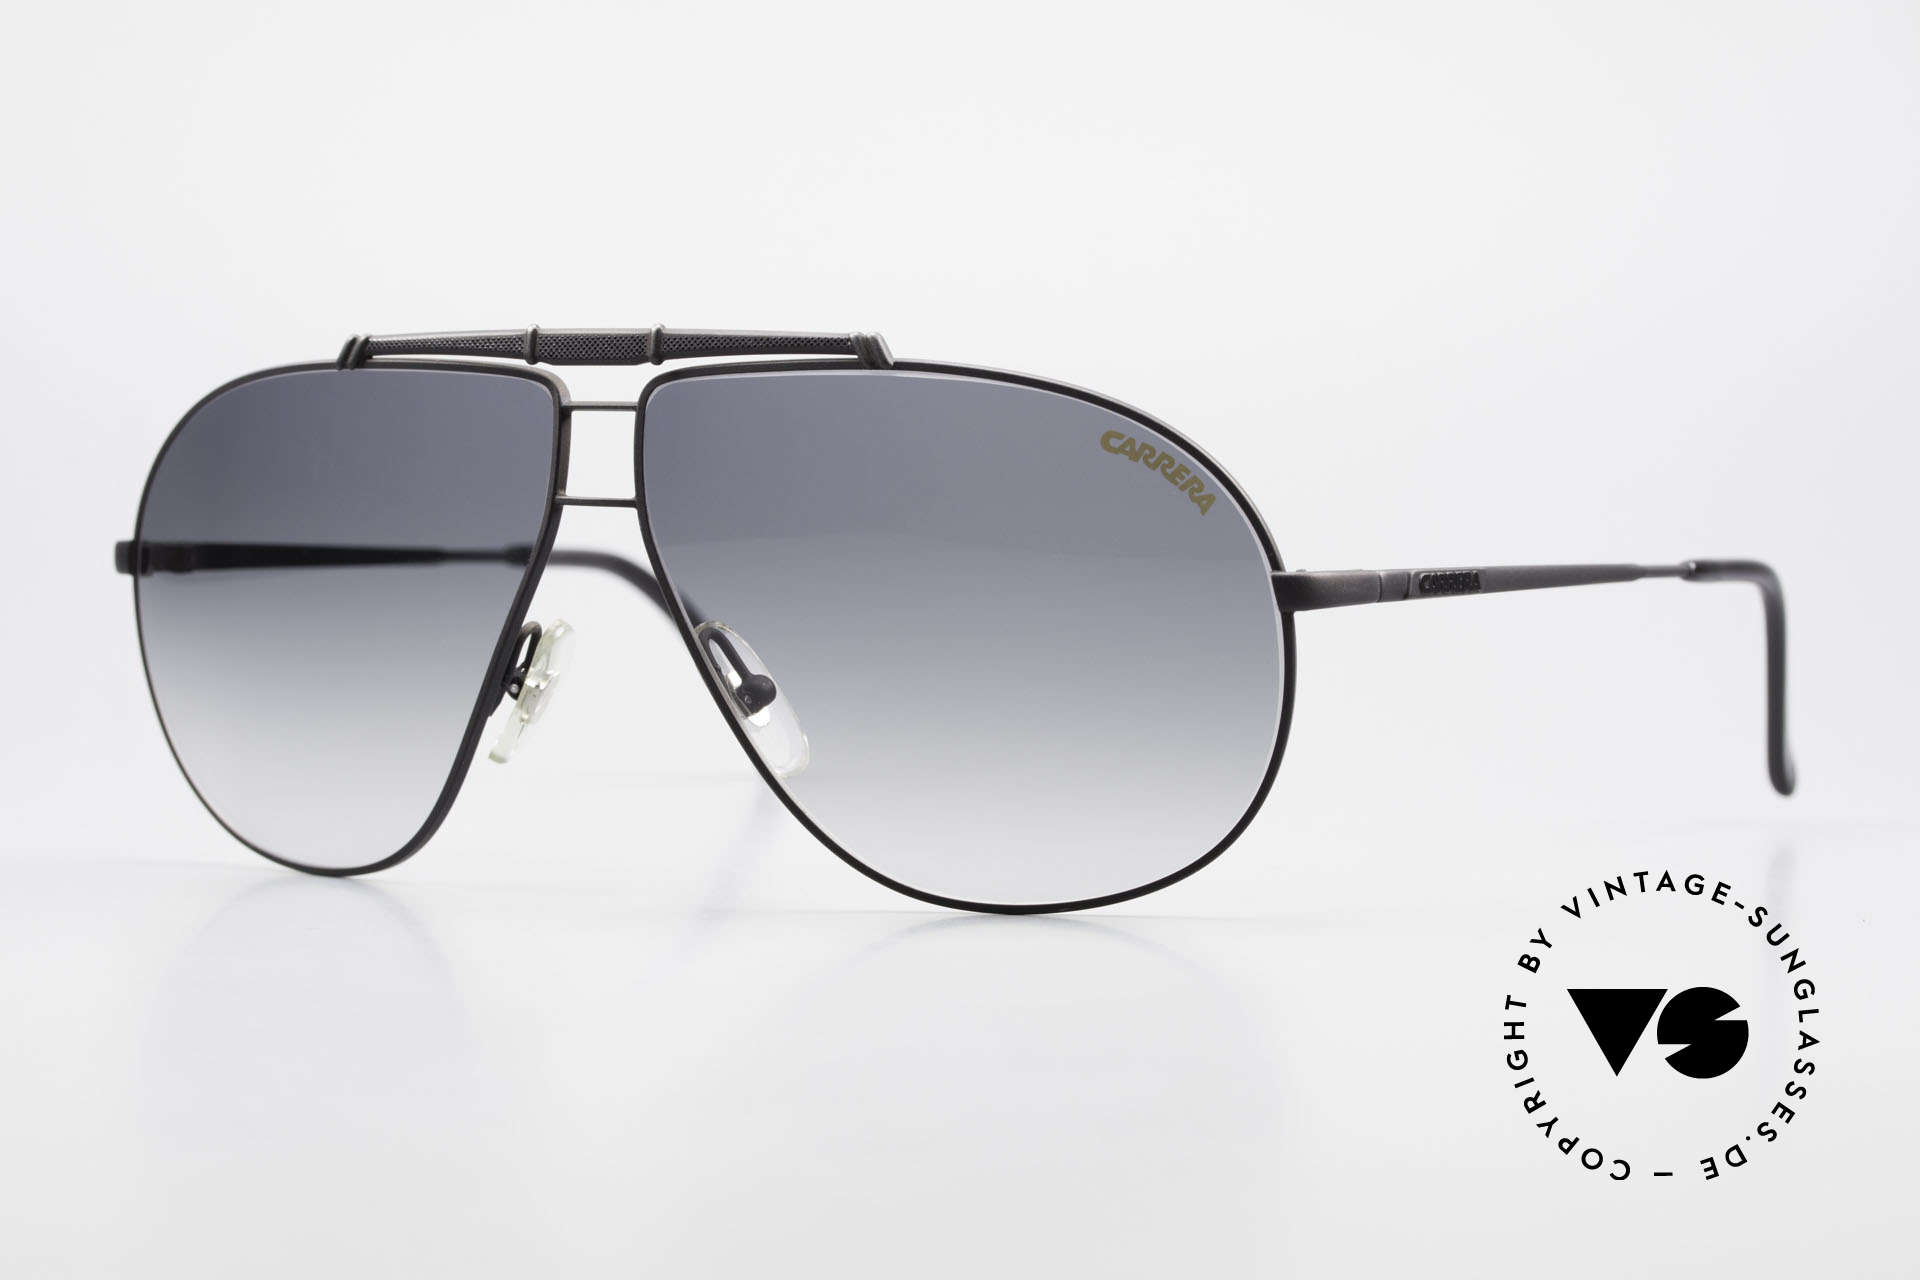 Carrera 5401 Large 80's Shades With Extra Lenses, Carrera shades of the Carrera Collection from 1989/90, Made for Men